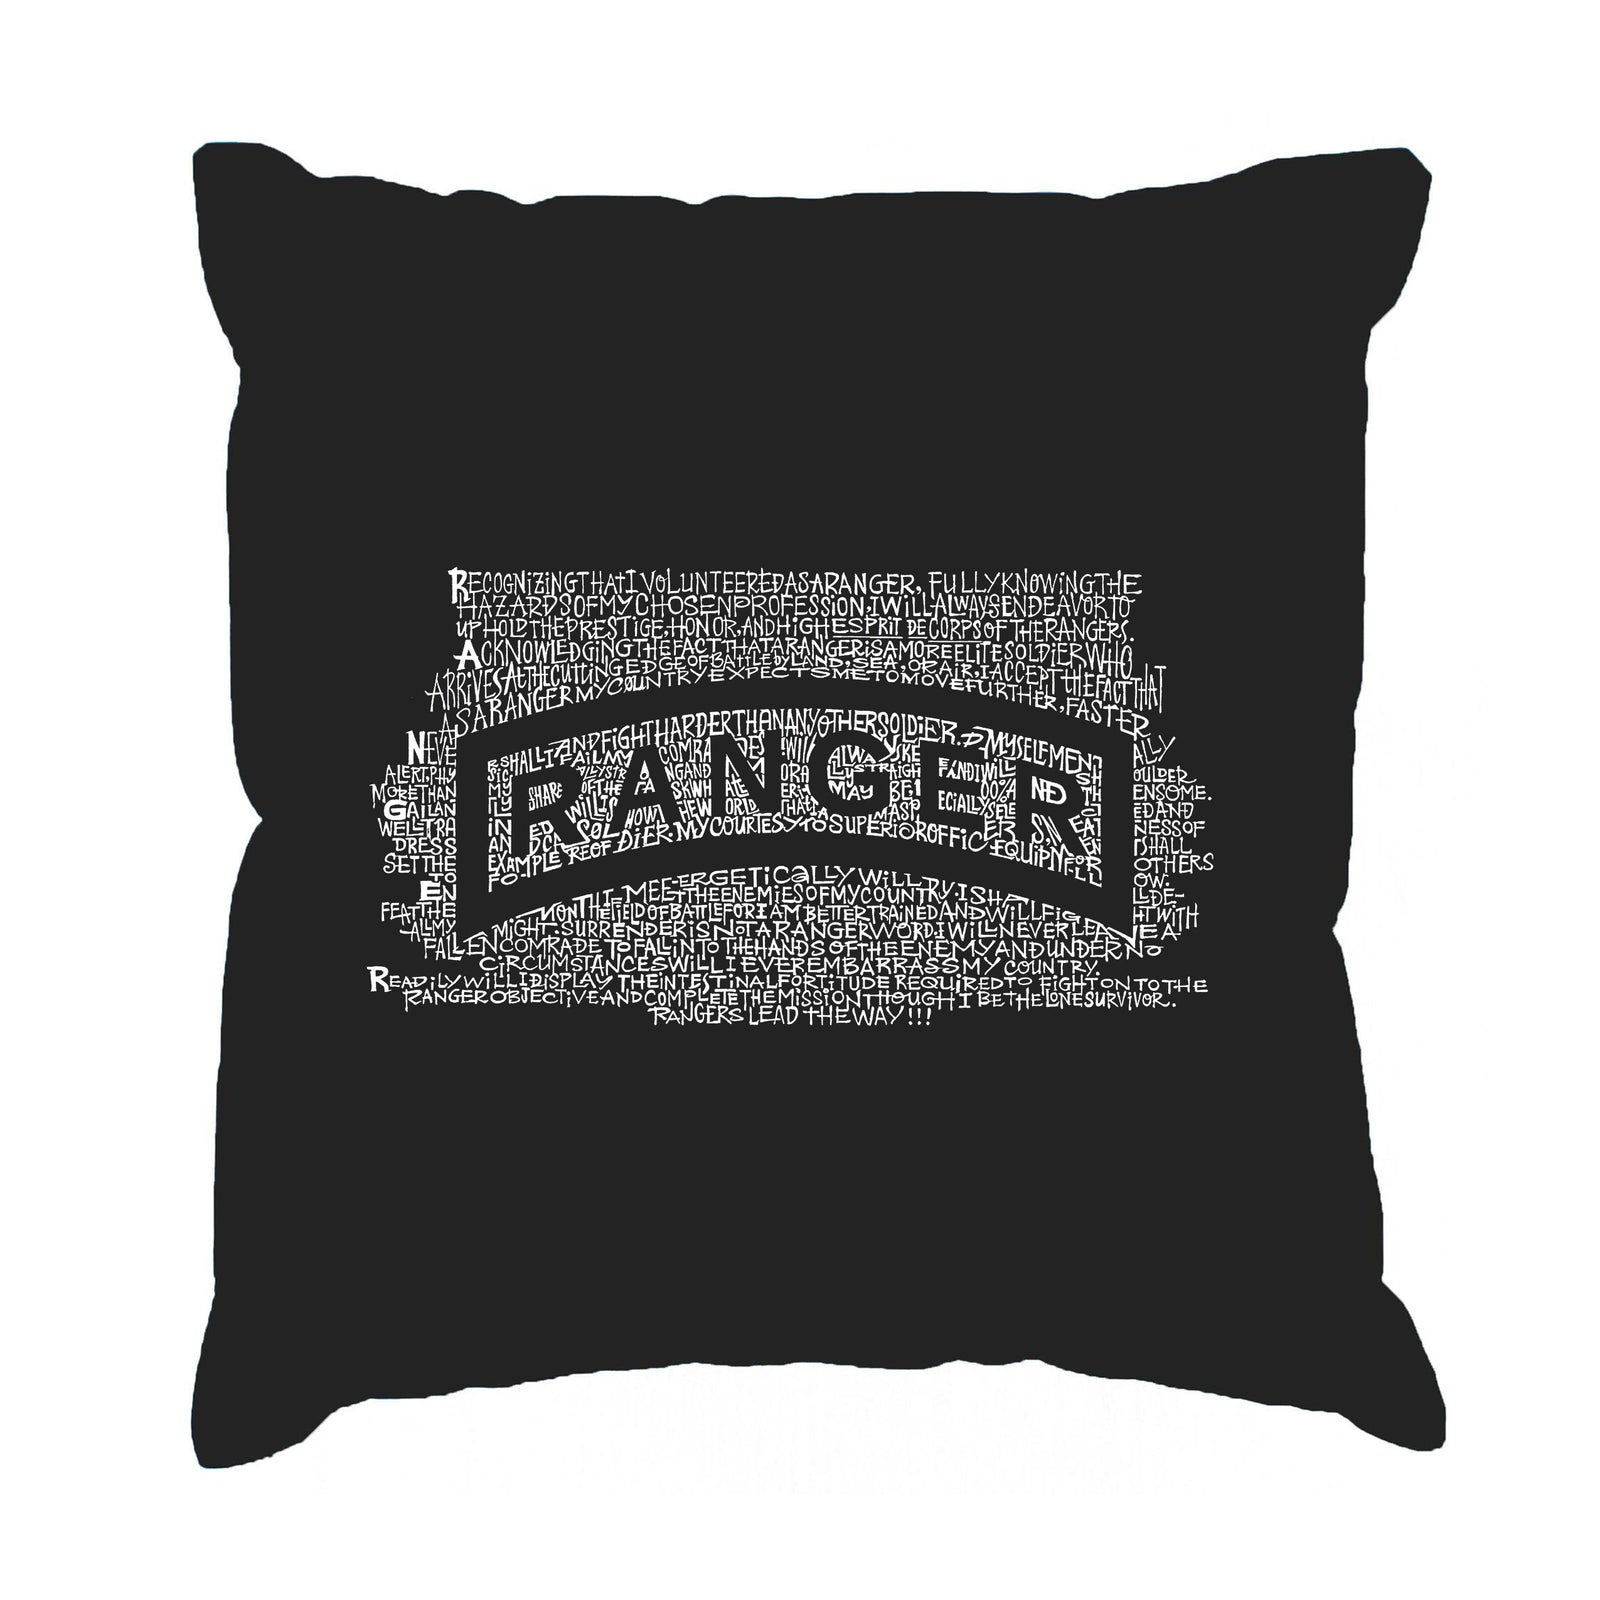 Throw Pillow Cover - The US Ranger Creed